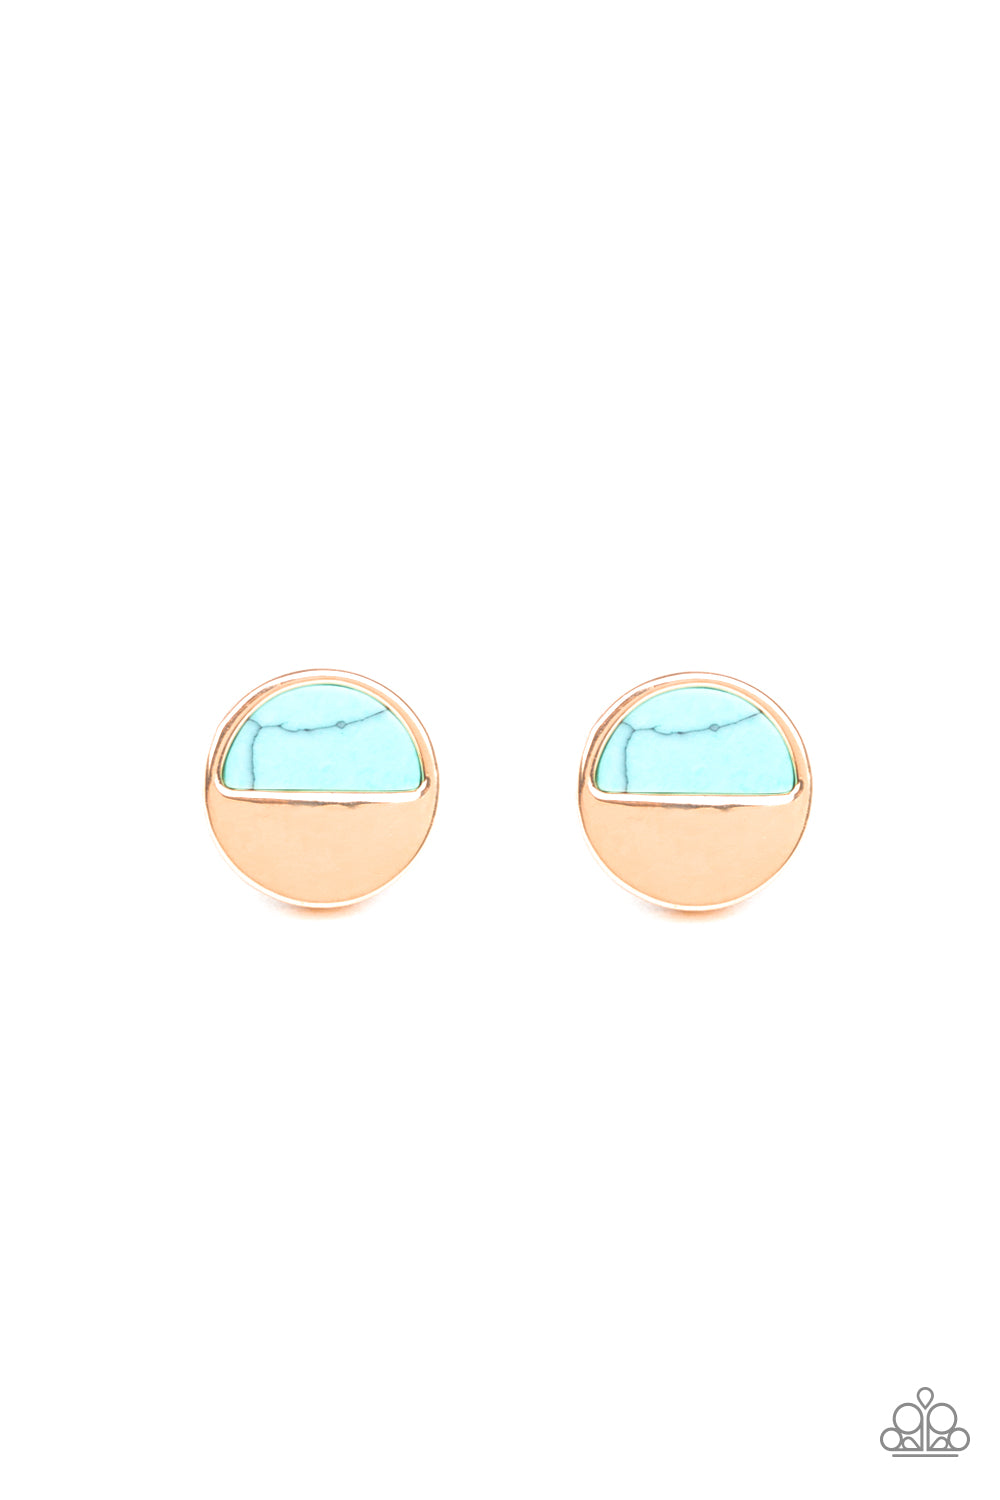 five-dollar-jewelry-marble-minimalist-blue-post earrings-paparazzi-accessories